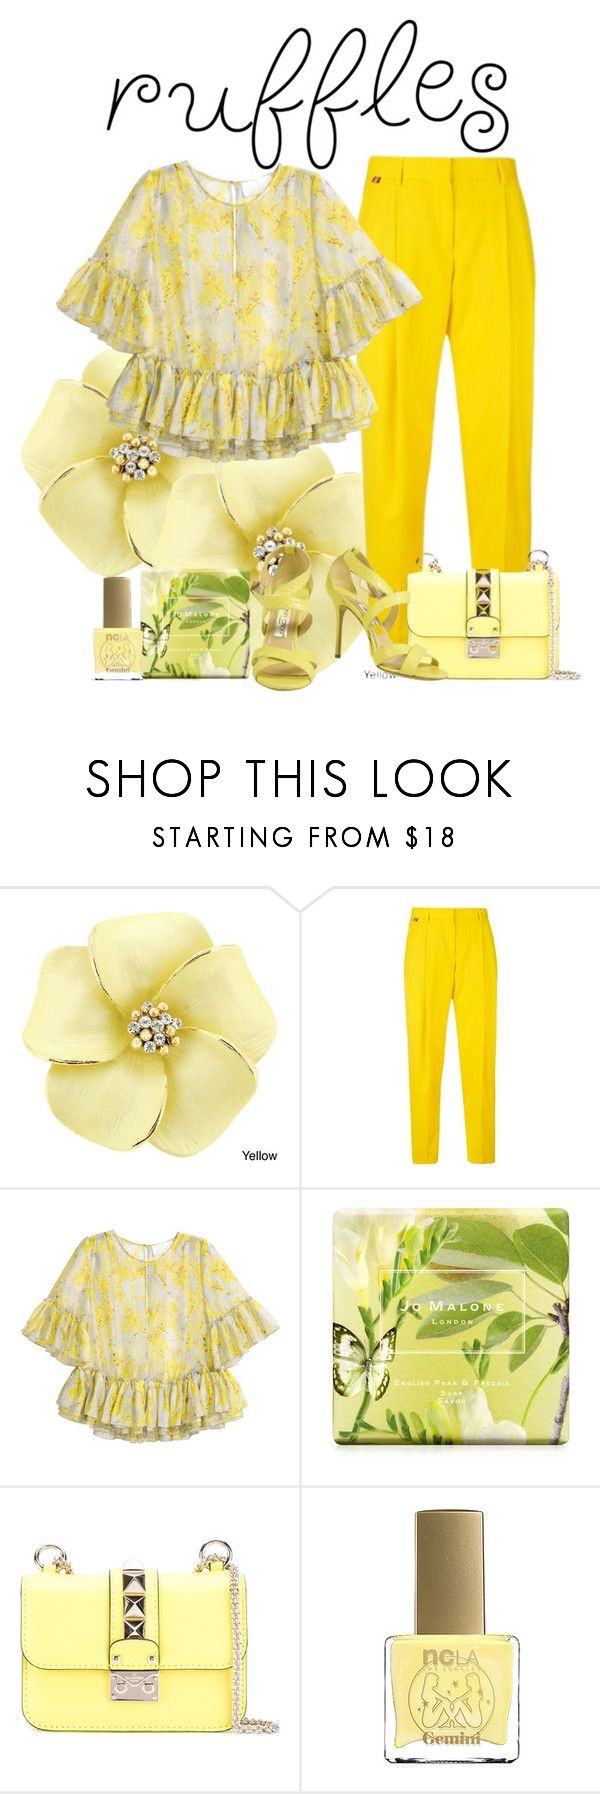 """ruffles"" by the-vintage-palace2016 ❤ liked on Polyvore featuring Paul Smith, H&M, Jo Malone, Valentino, ncLA and Jimmy Choo"